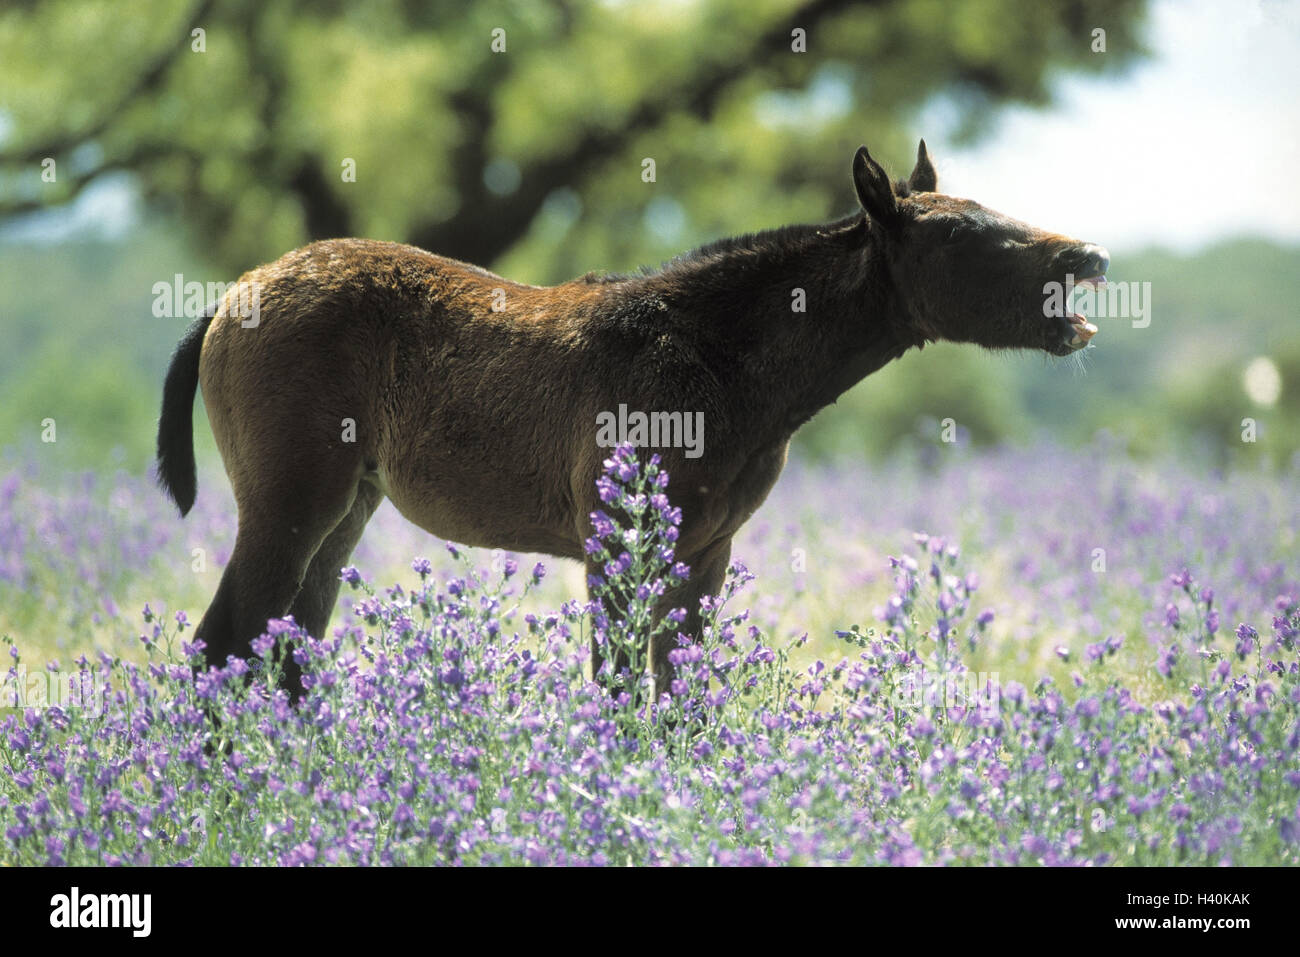 Horse, Lusitaner foal, neigh, side view, flower meadow, animals, mammal, mammals, young animal, foal, horses, young, - Stock Image